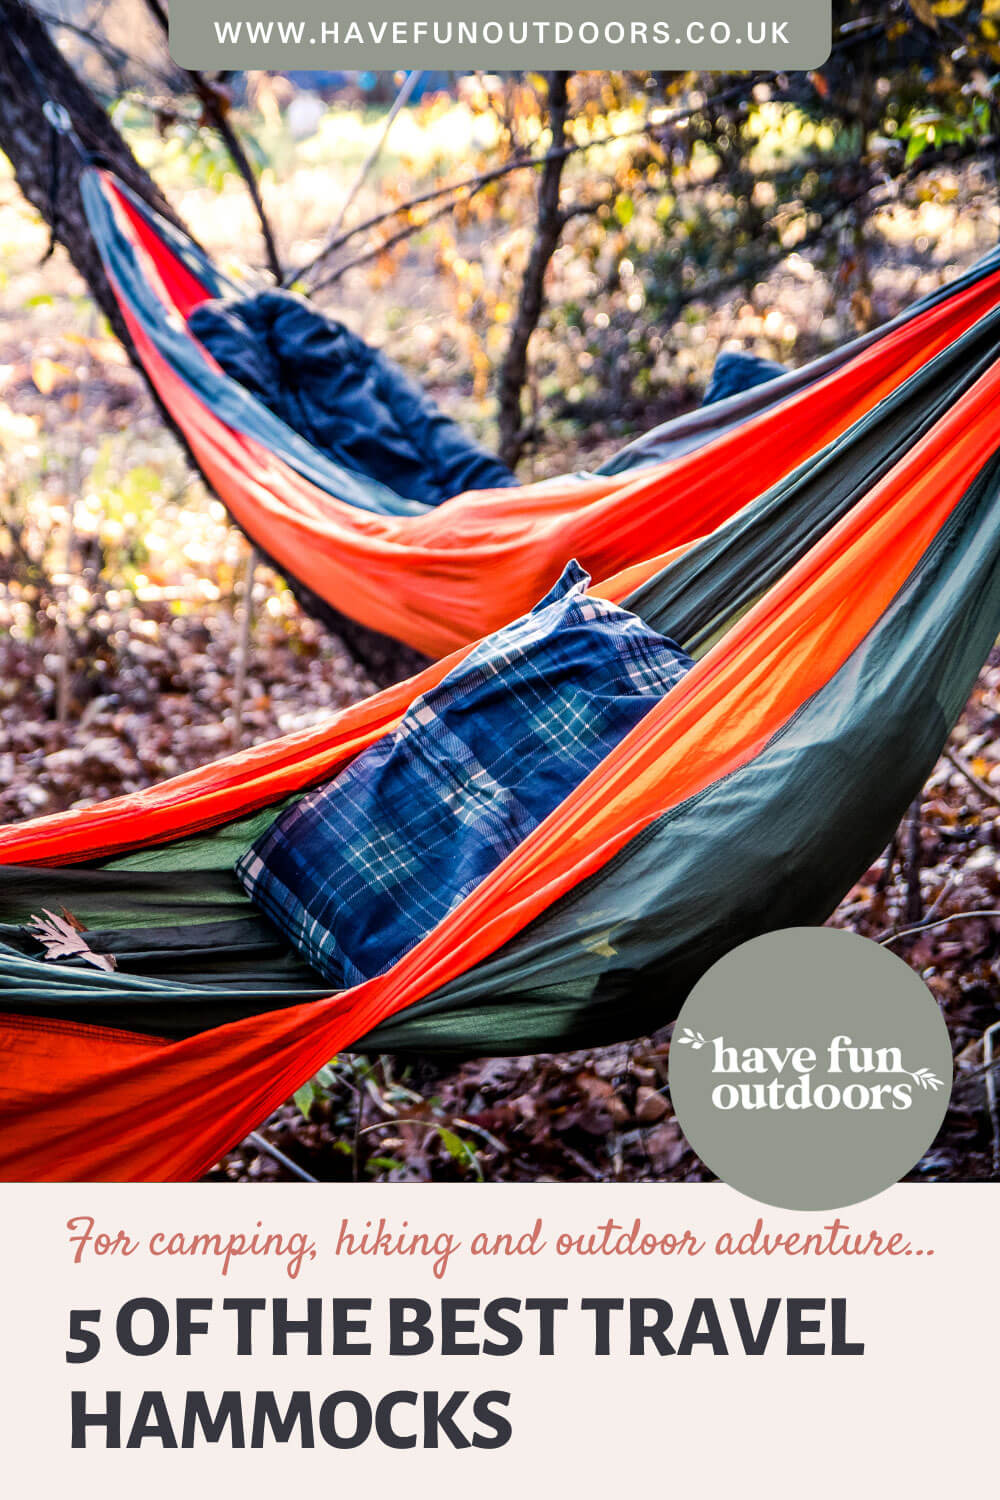 Best Travel Hammocks for Camping, Hiking and Outdoor Adventure